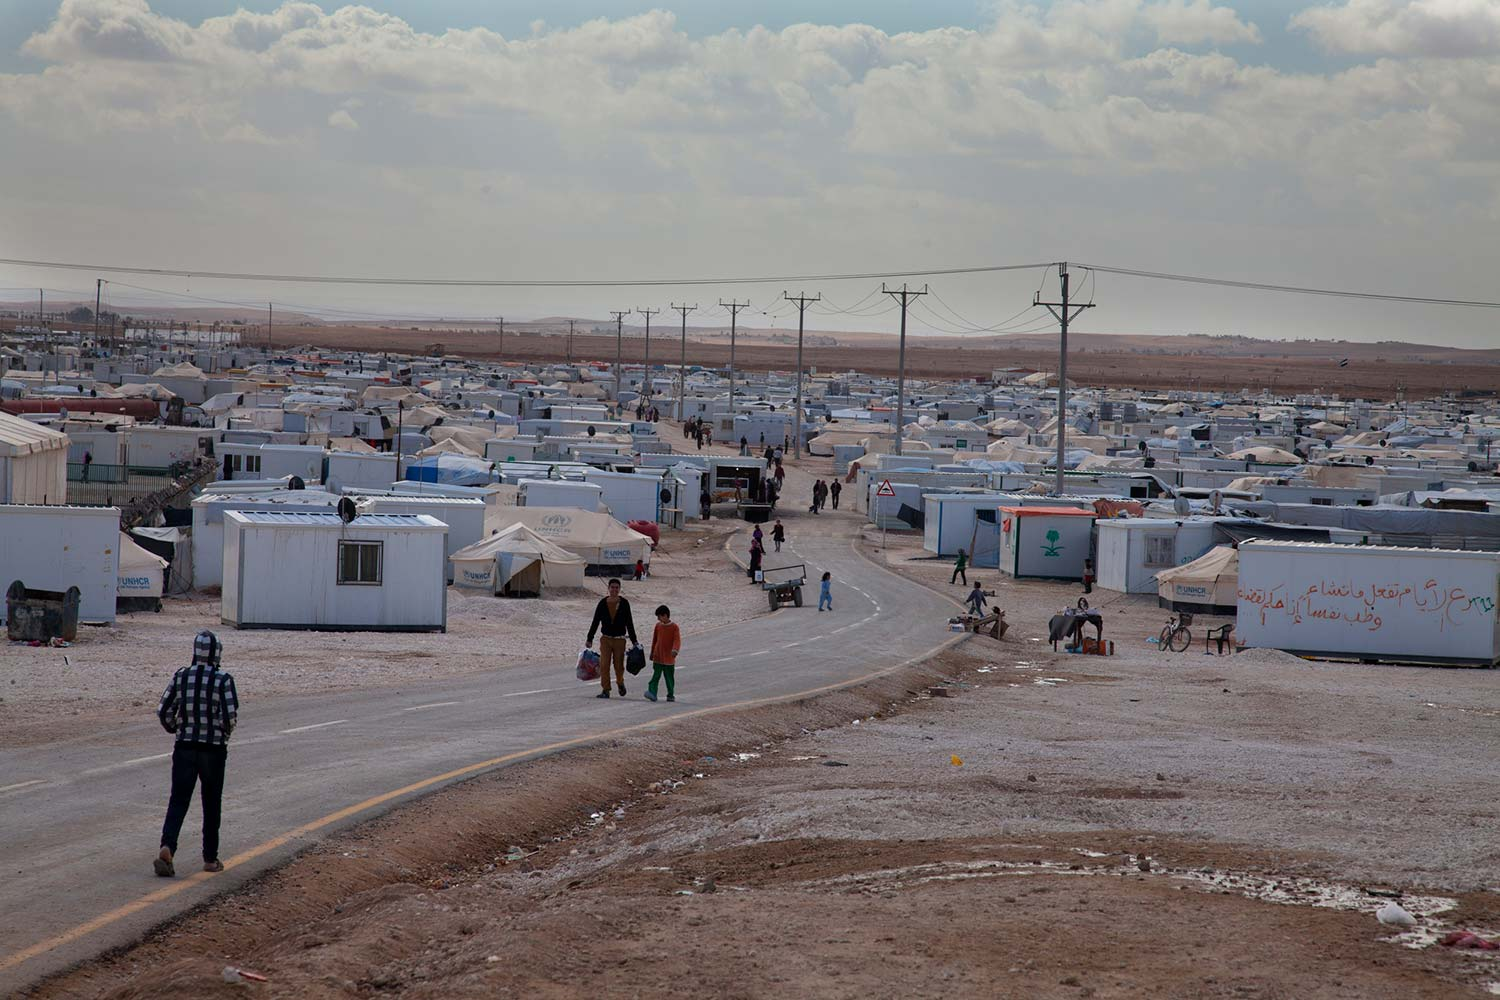 Refugees at the Syrian border. USHMM/Lucian Perkins.